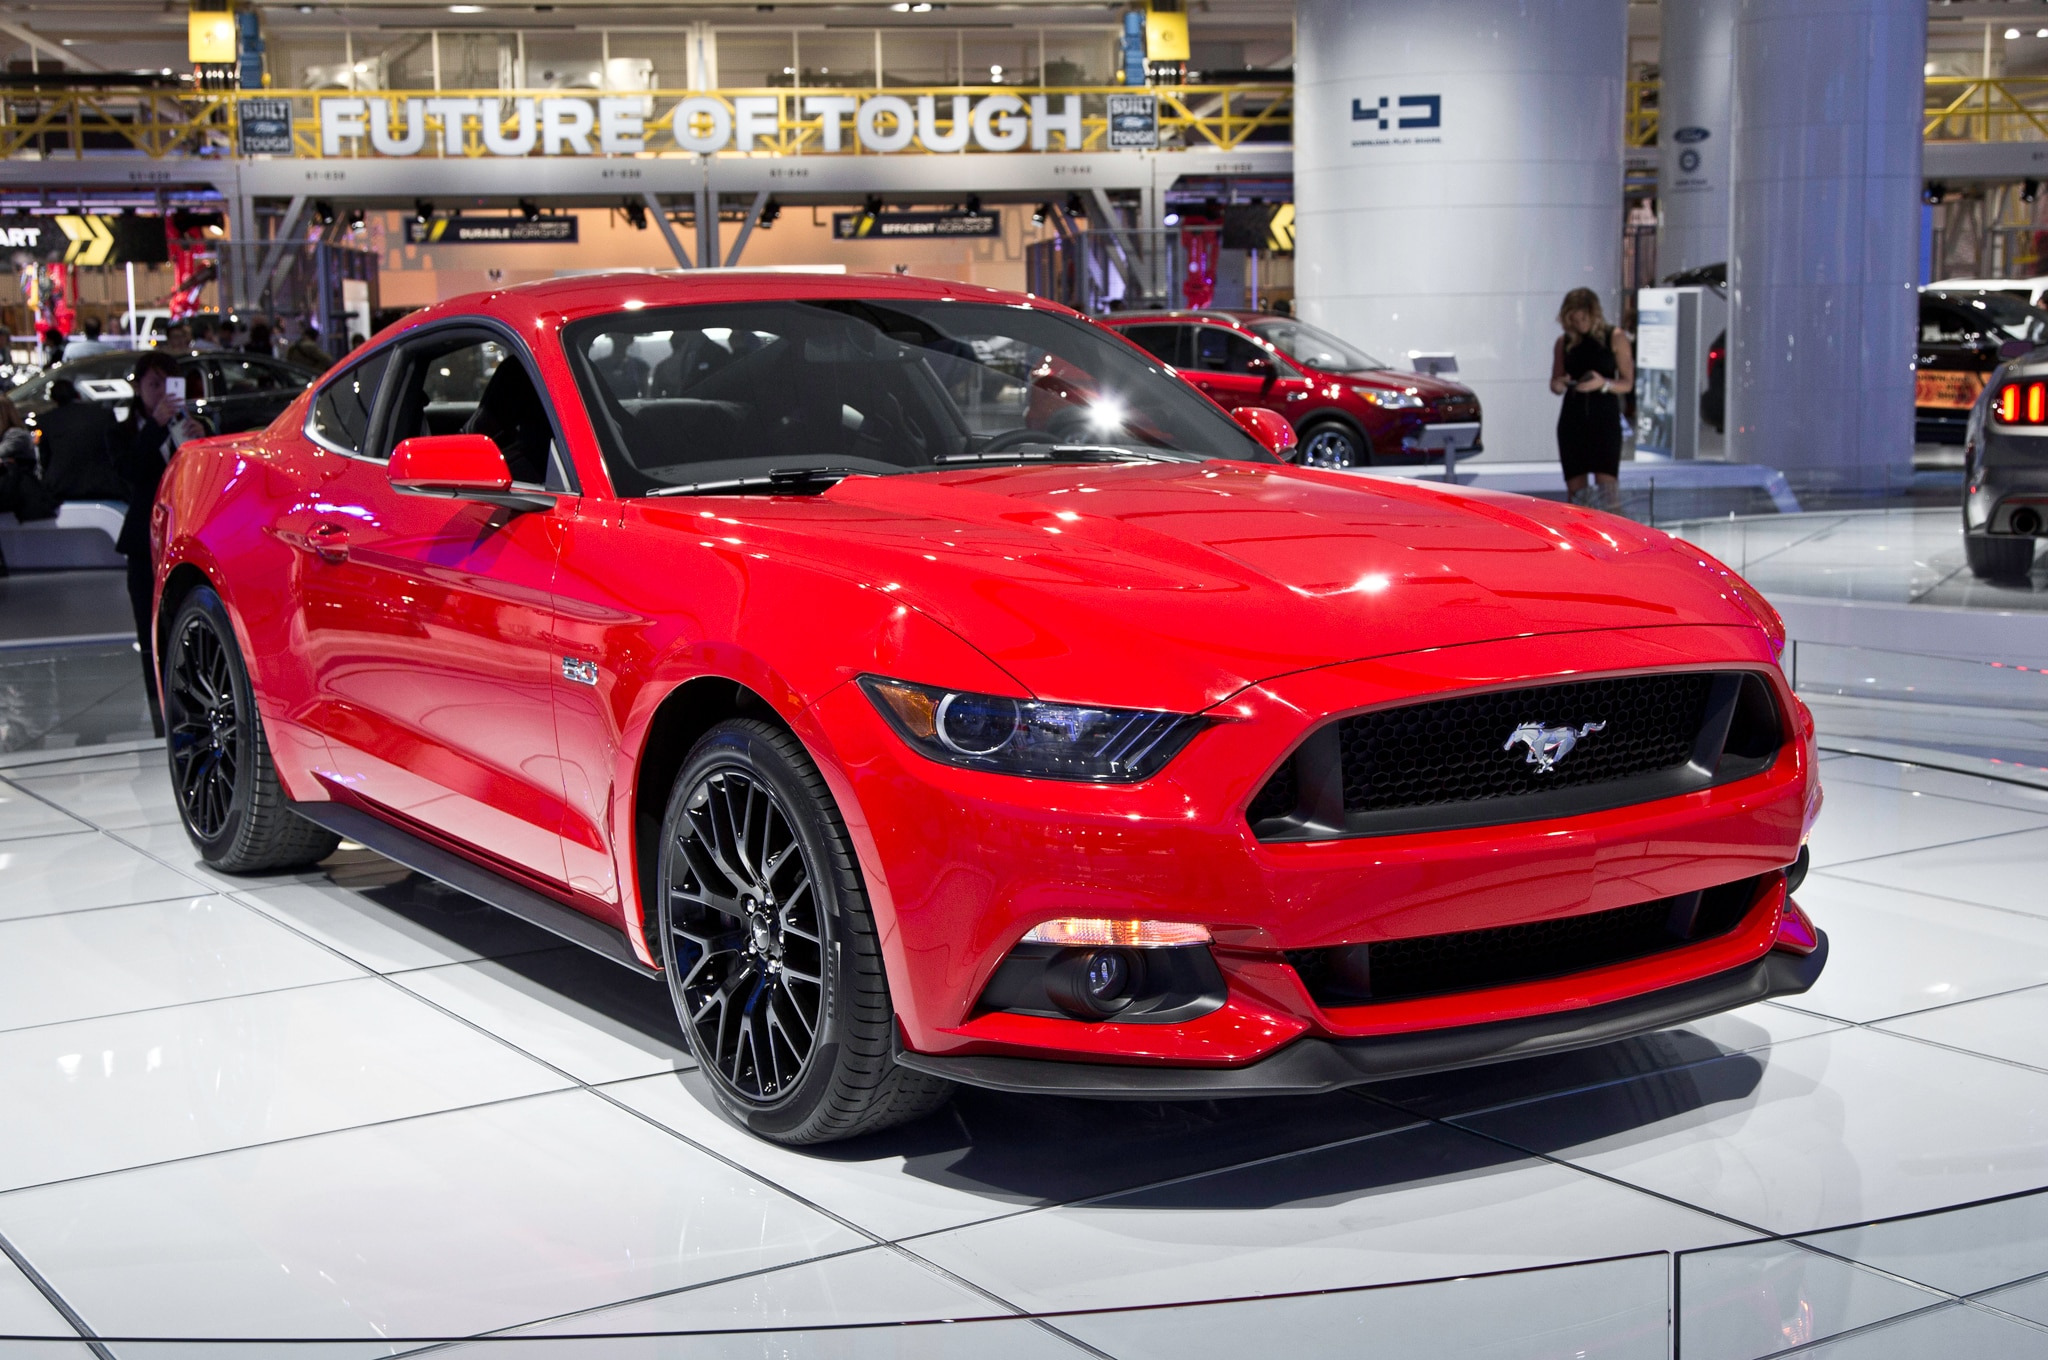 2015 ford mustang configurator pricing details go live. Black Bedroom Furniture Sets. Home Design Ideas